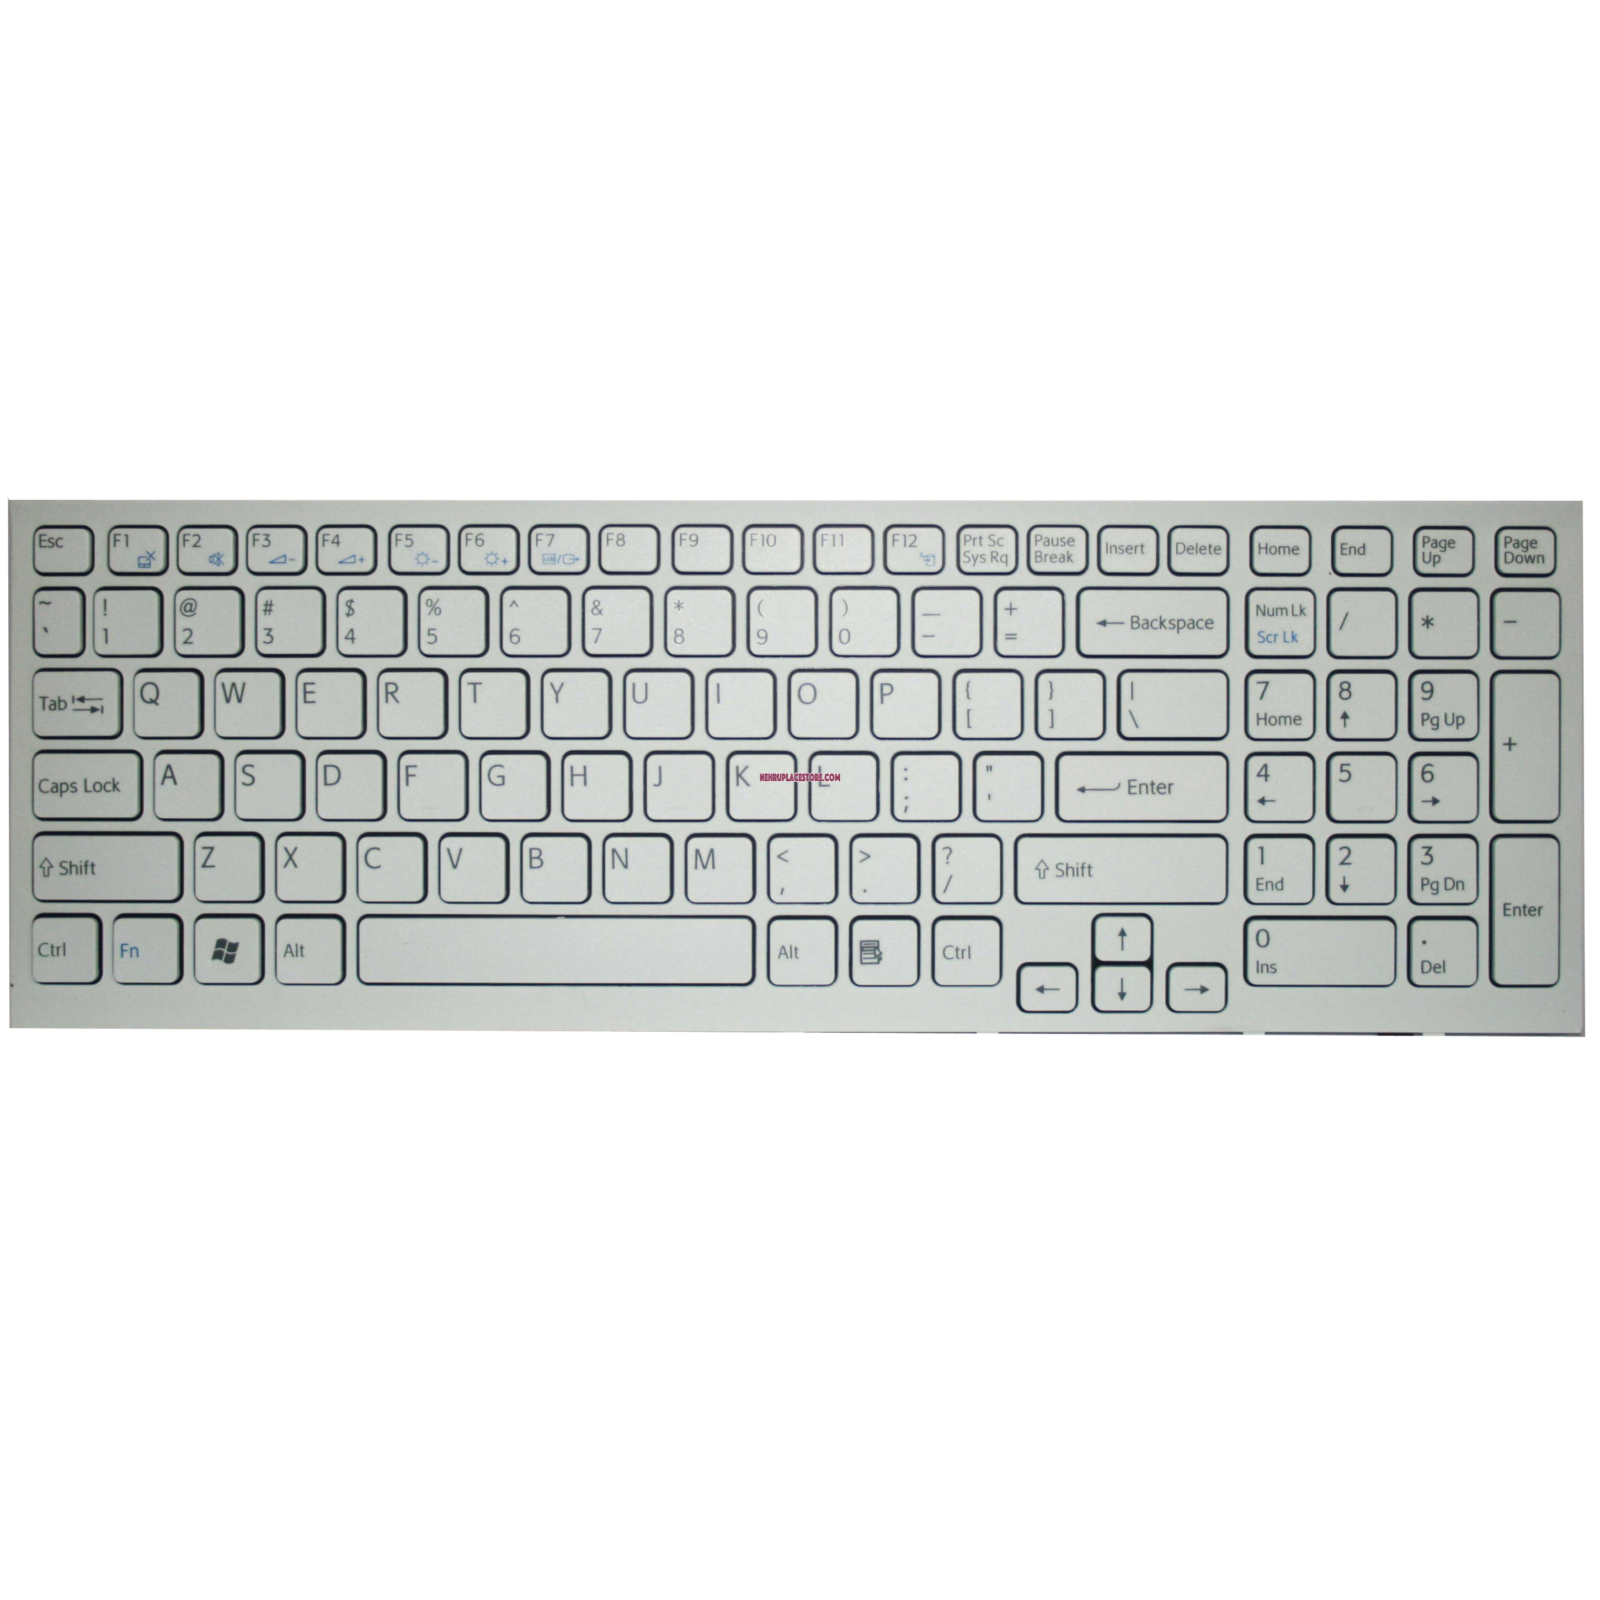 Buy Sony Vaio PCG 71911W Laptop Internal Keyboard Online in India at Lowest  Prices | Price in India | buysnip com